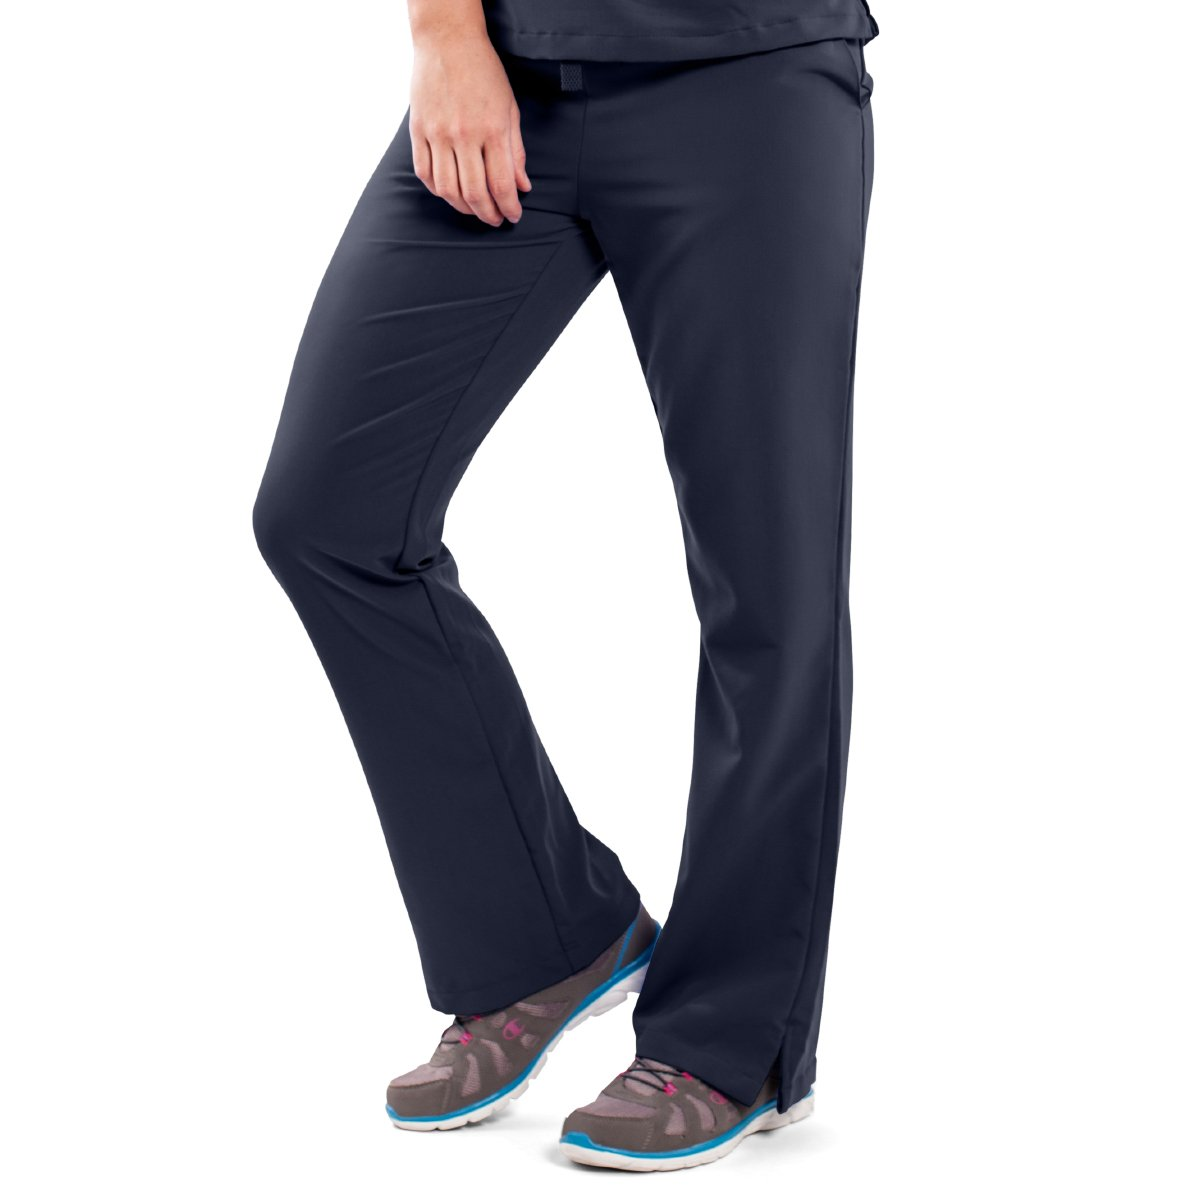 ave Women's Medical Scrub Ranking TOP3 Bootcut Pants 55% OFF Melrose Style